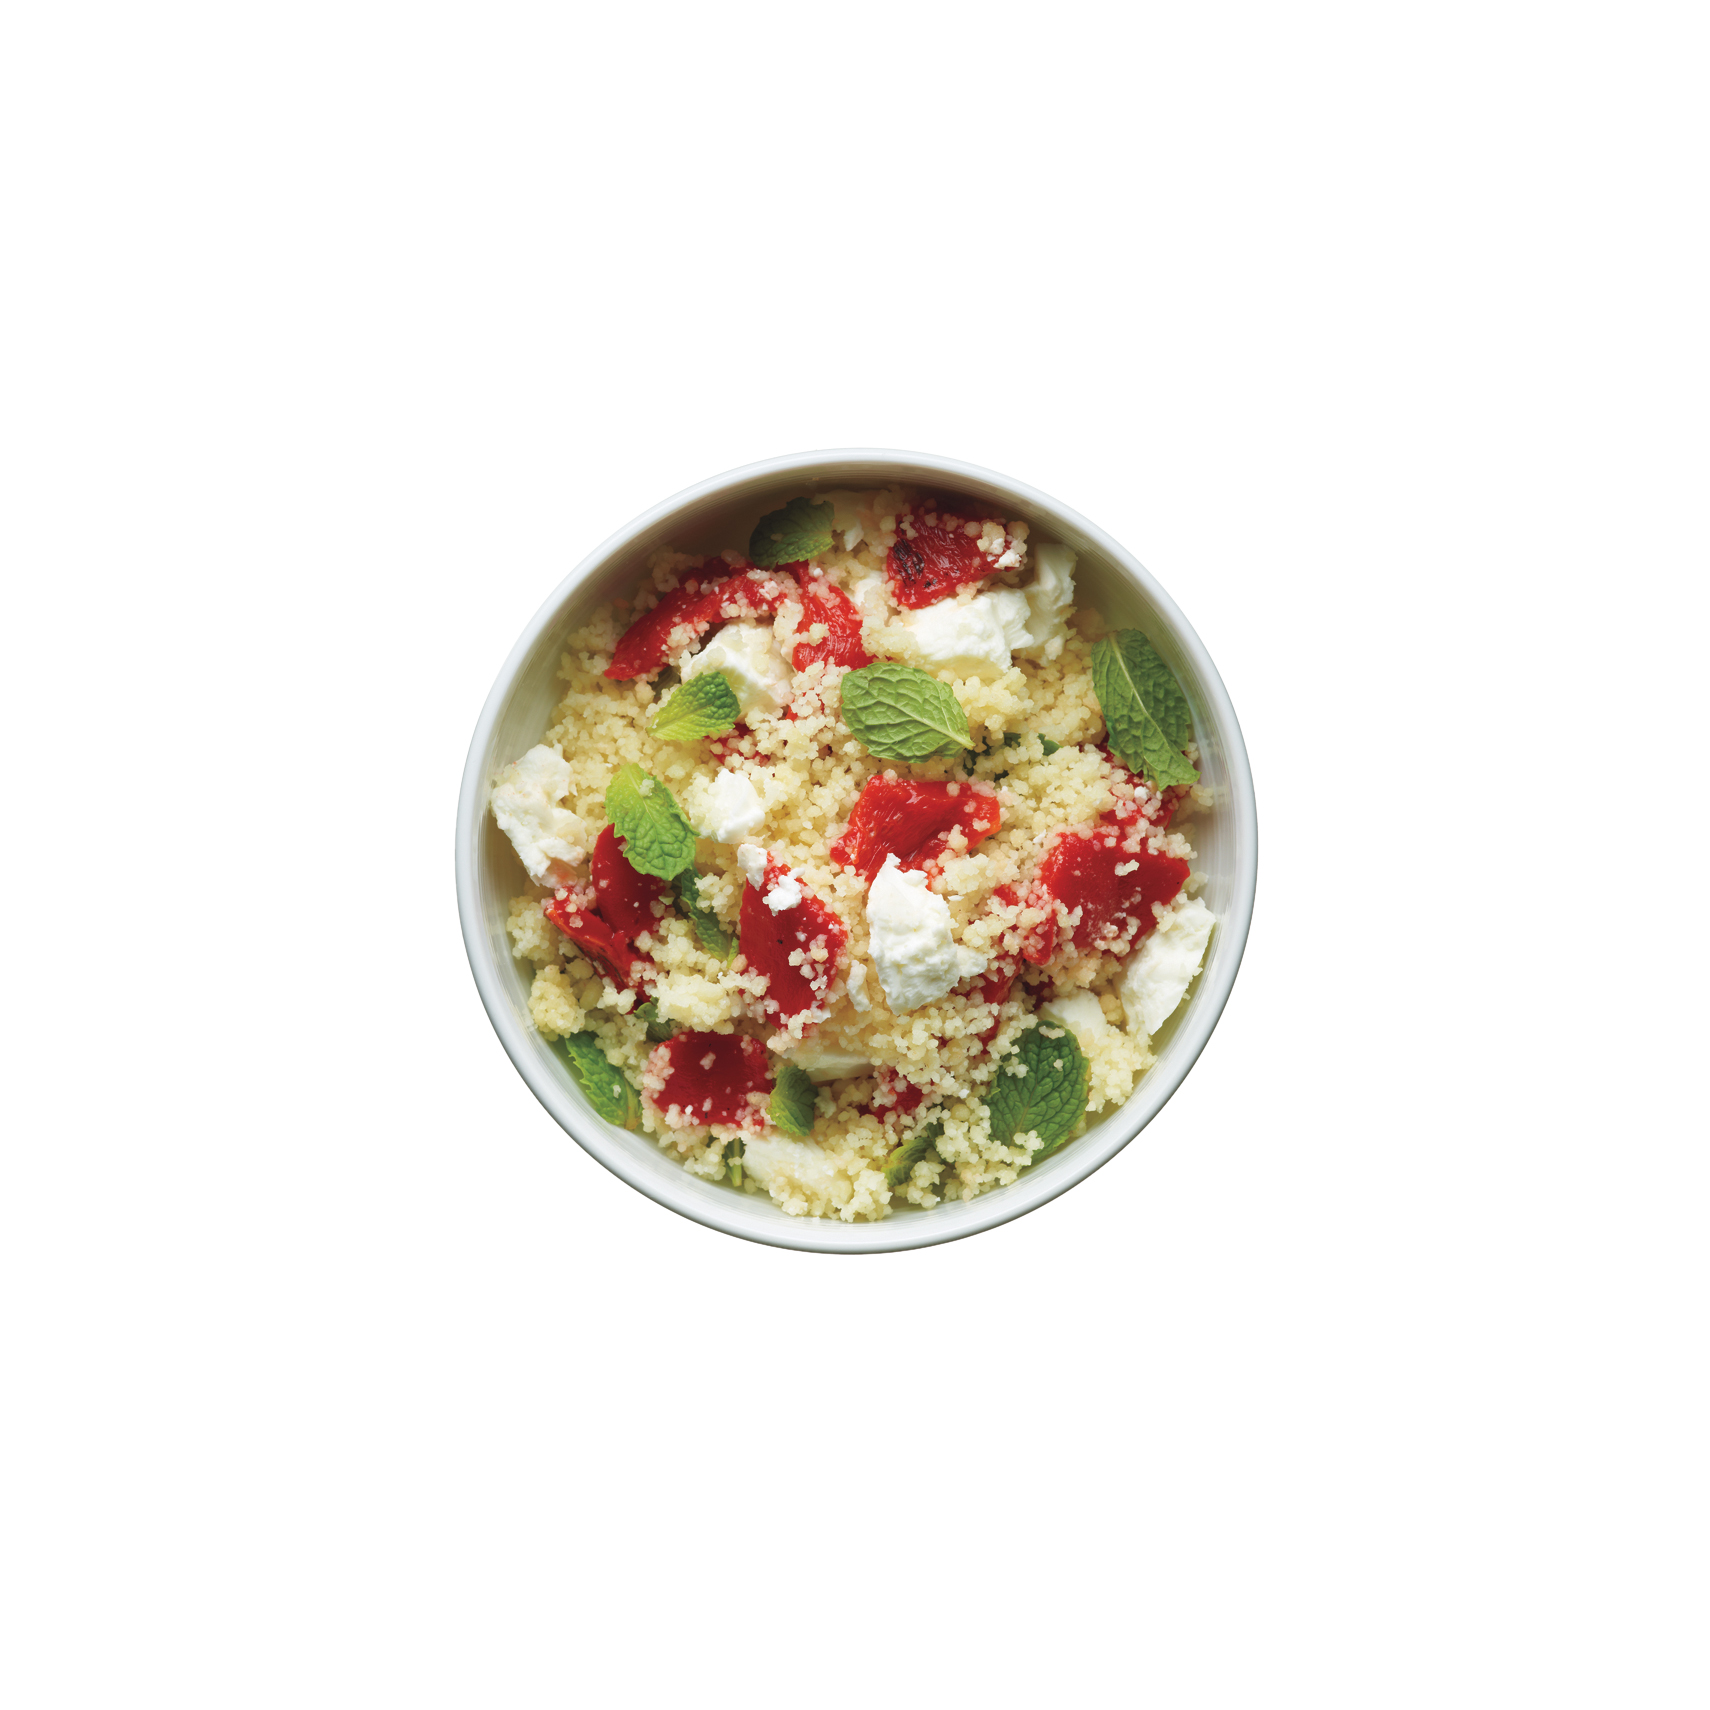 Couscous With Roasted Red Peppers, Feta, and Mint